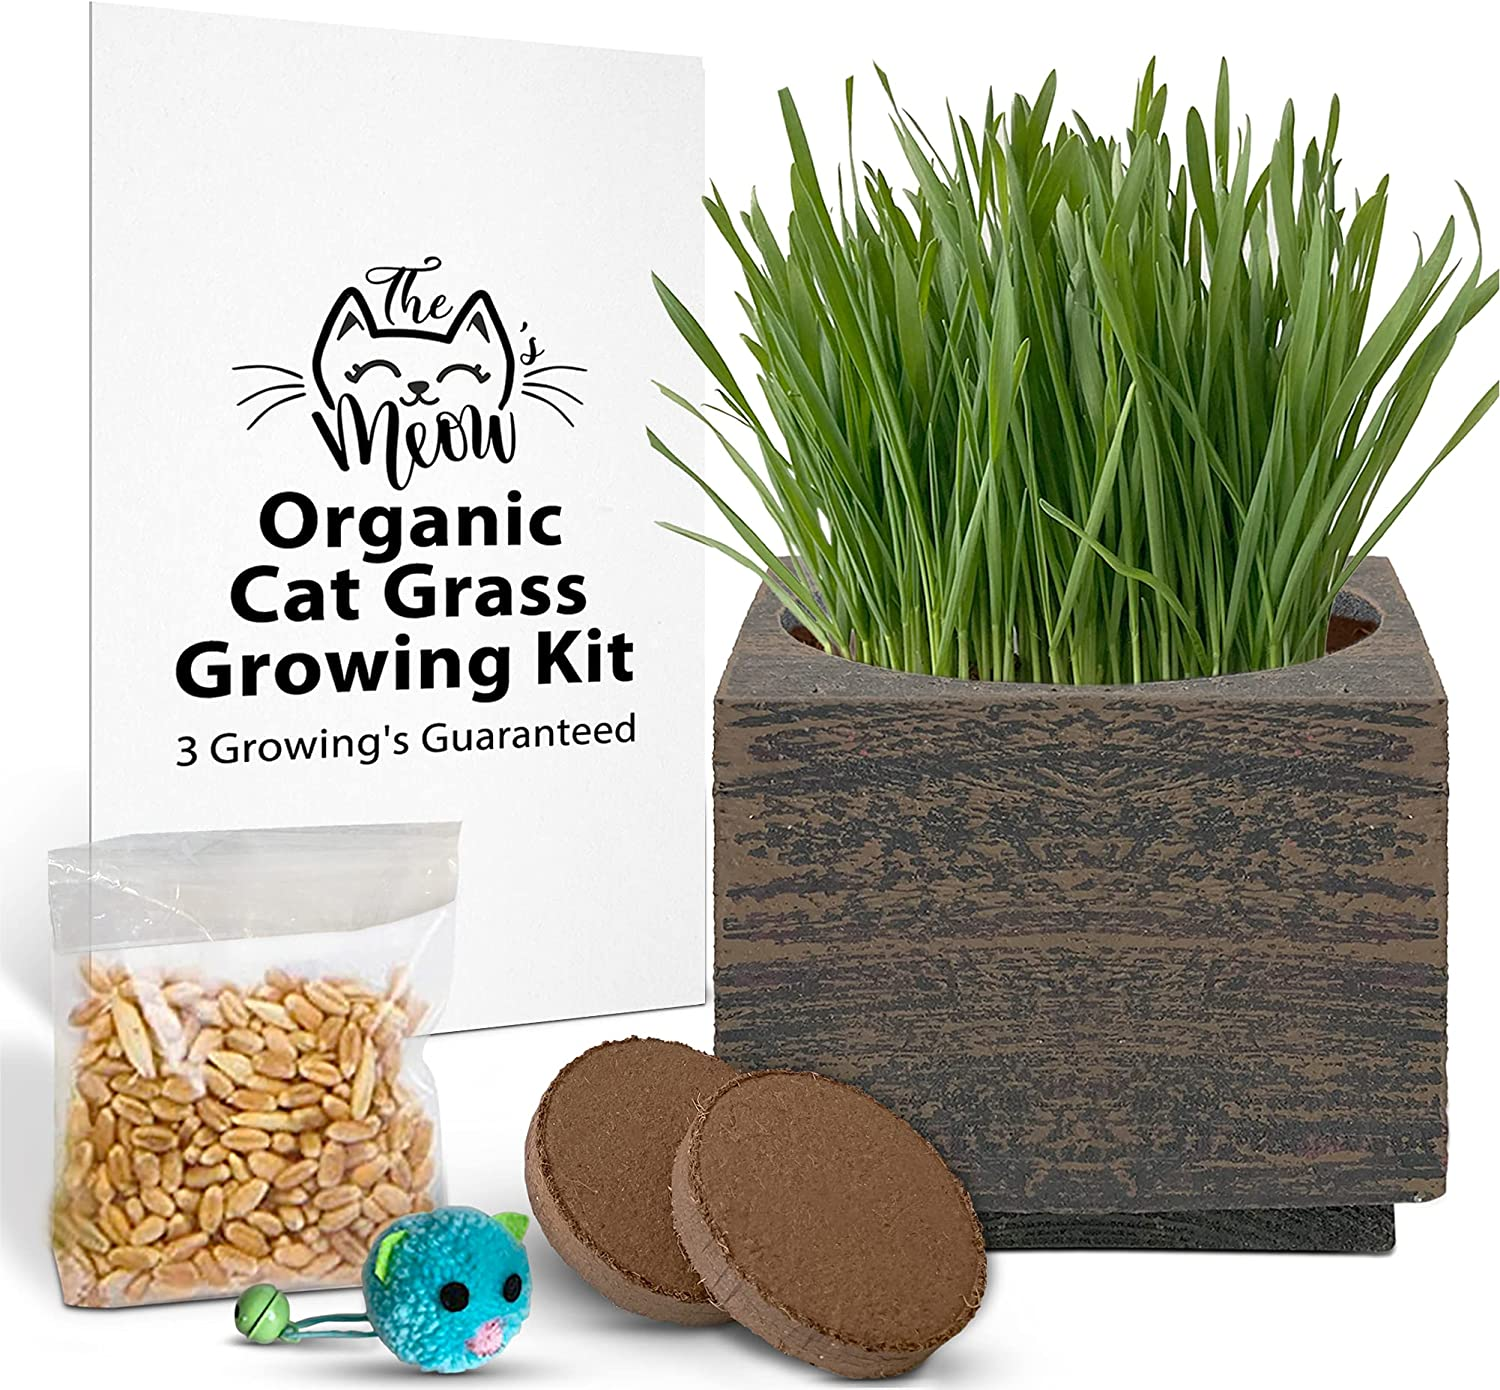 Organic Cat Grass Seeds Kit - Under blast sales 3 Soil Our shop most popular for Growing' Seed